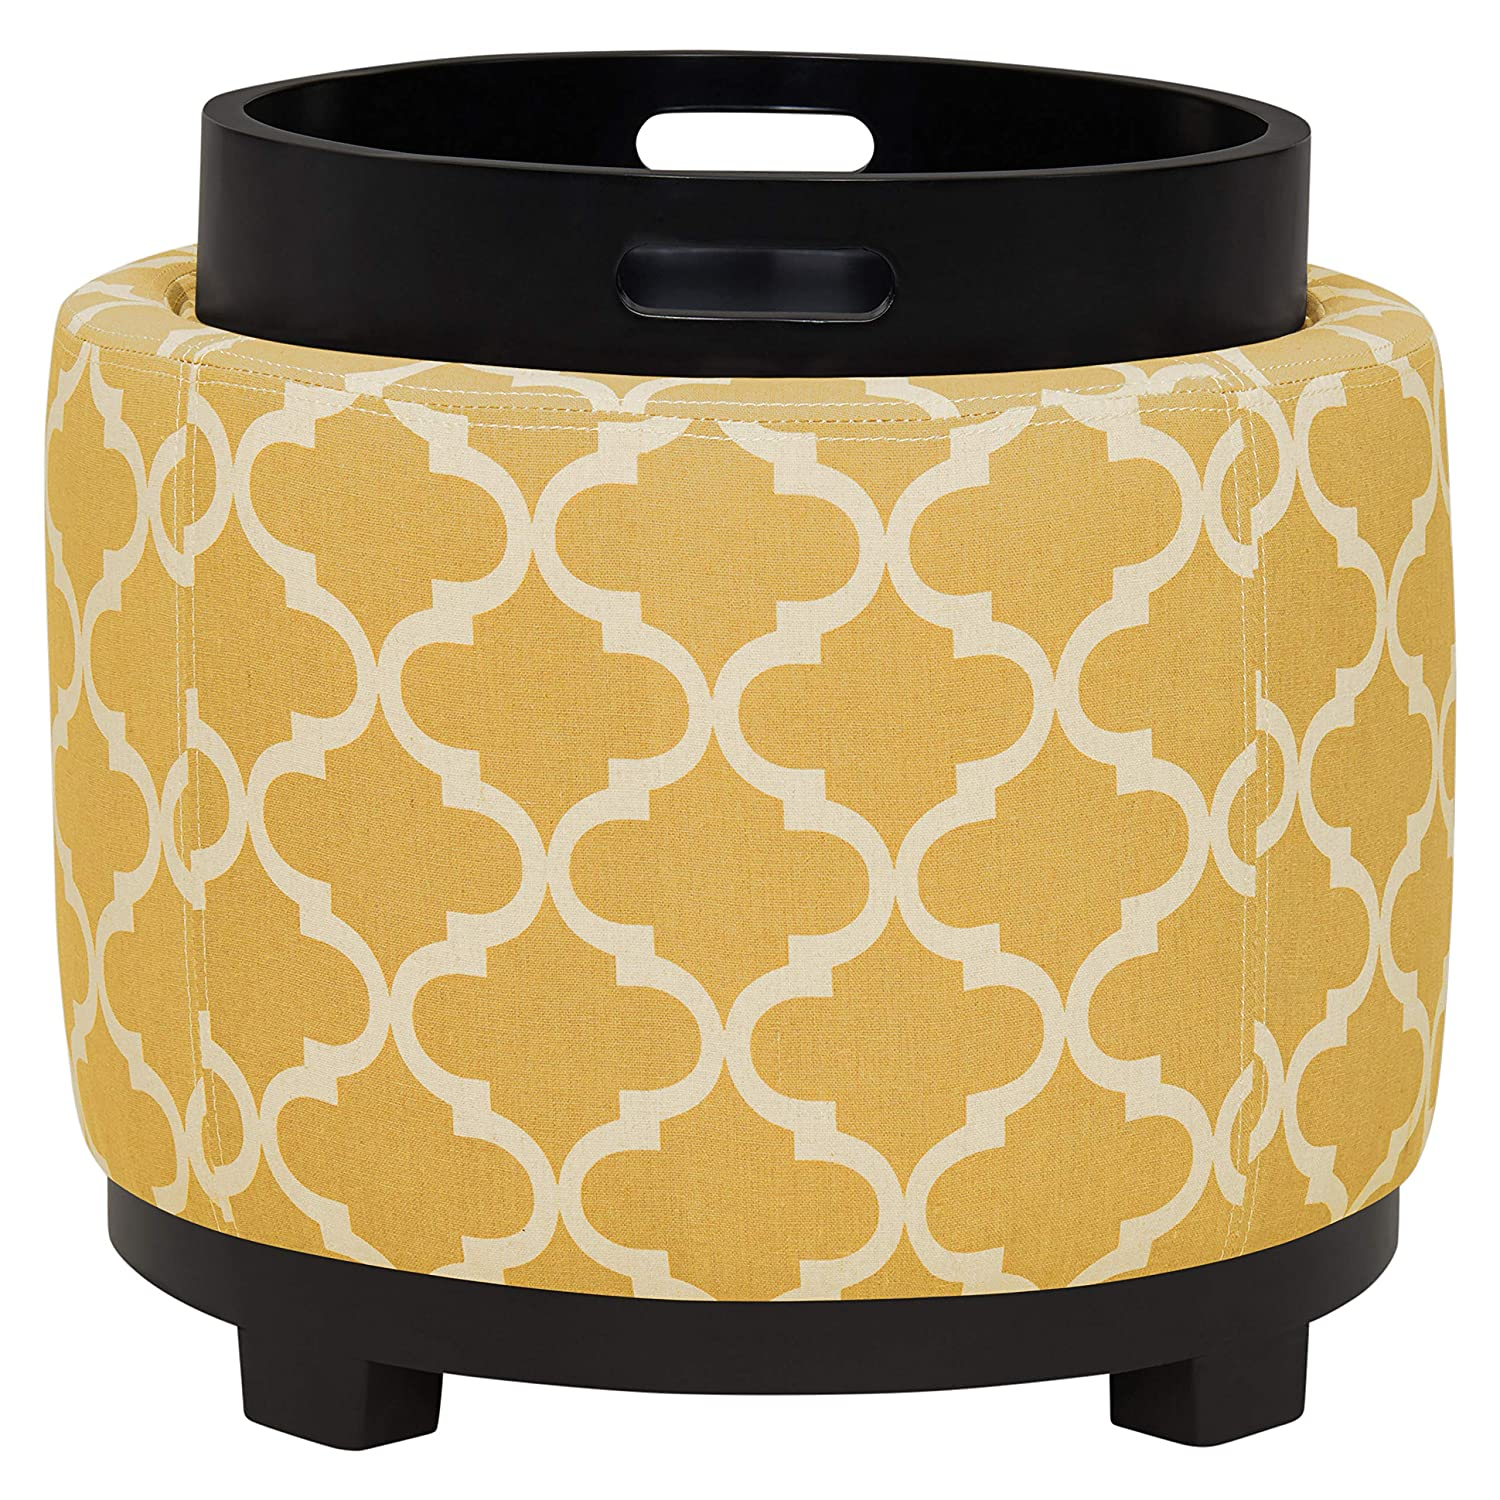 Ravenna Home Morrocan Storage Ottoman with Tray – 19 Inch, Yellow and Cream